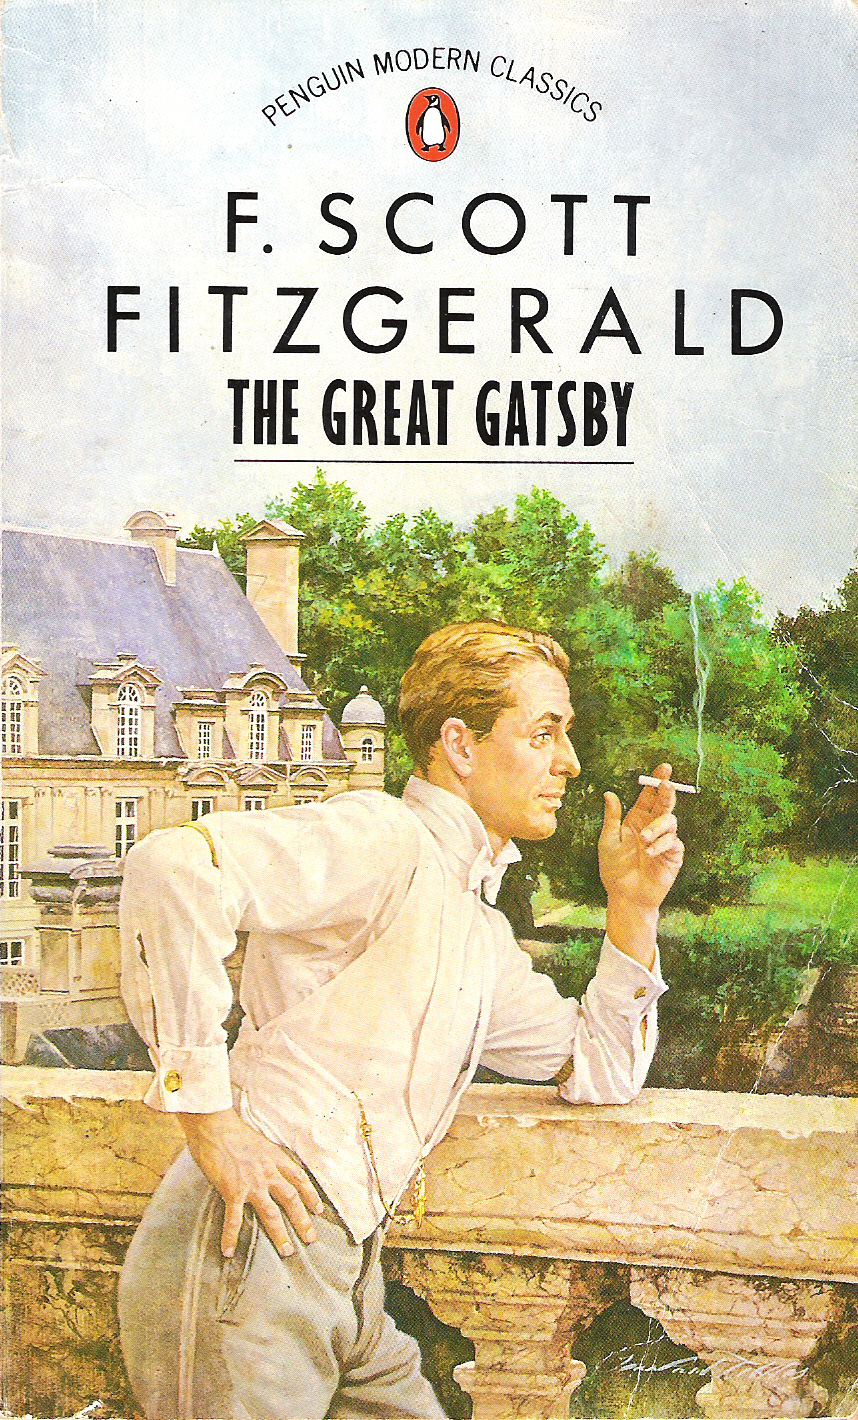 the american dream of characters in fscott fitzgeralds novel the great gatsby One of the most iconic books in american literature, f scott fitzgerald's tragic tale the great gatsby remains the quintessential literary depiction of the 1920s.